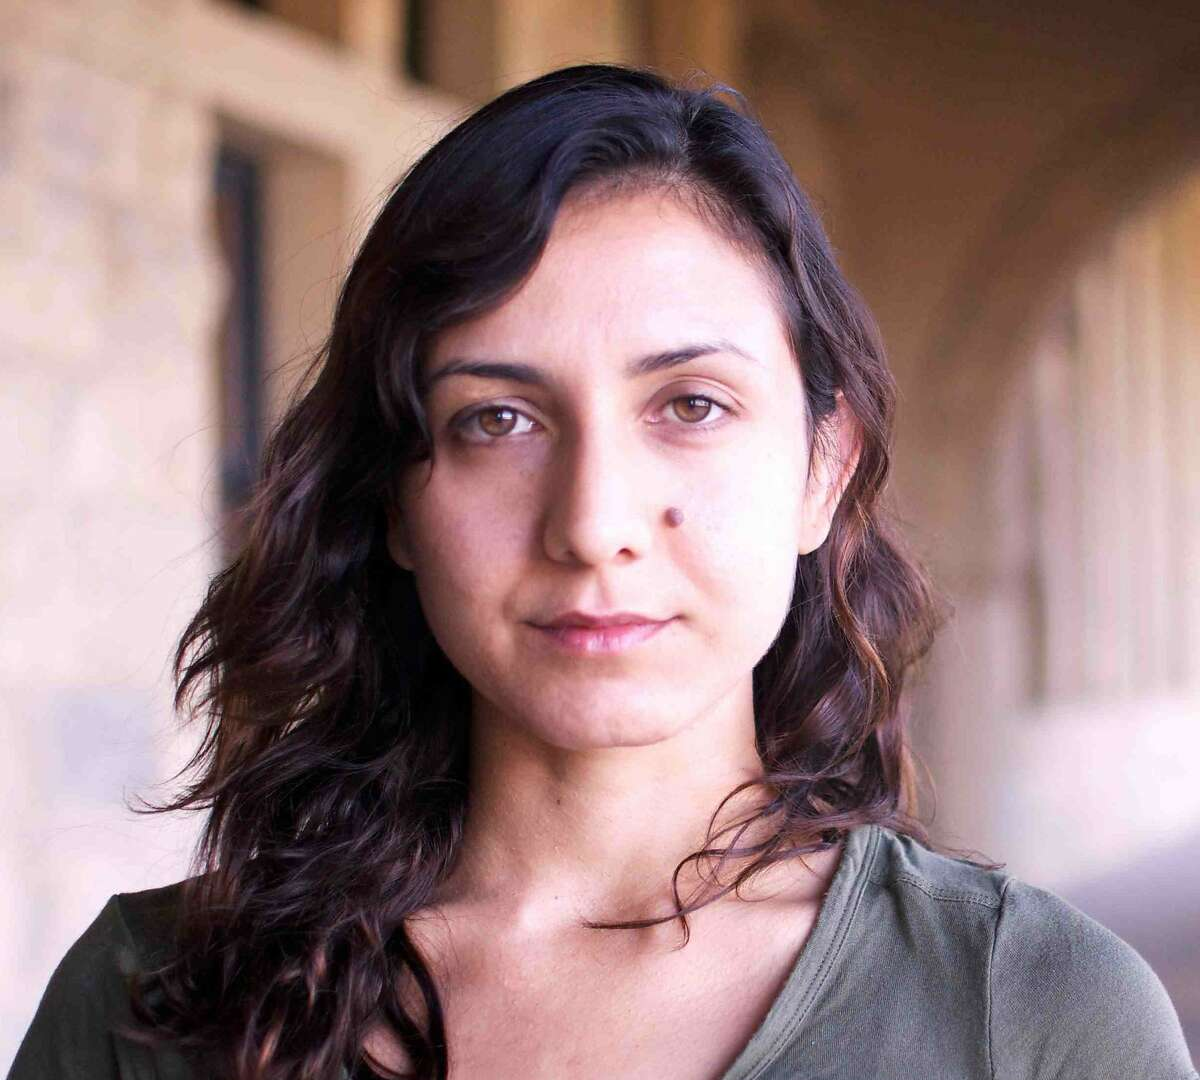 Author Ottessa Moshfegh reads at Green Apple Books on the Park on Thursday, Aug. 20. Credit: Krystal Griffiths